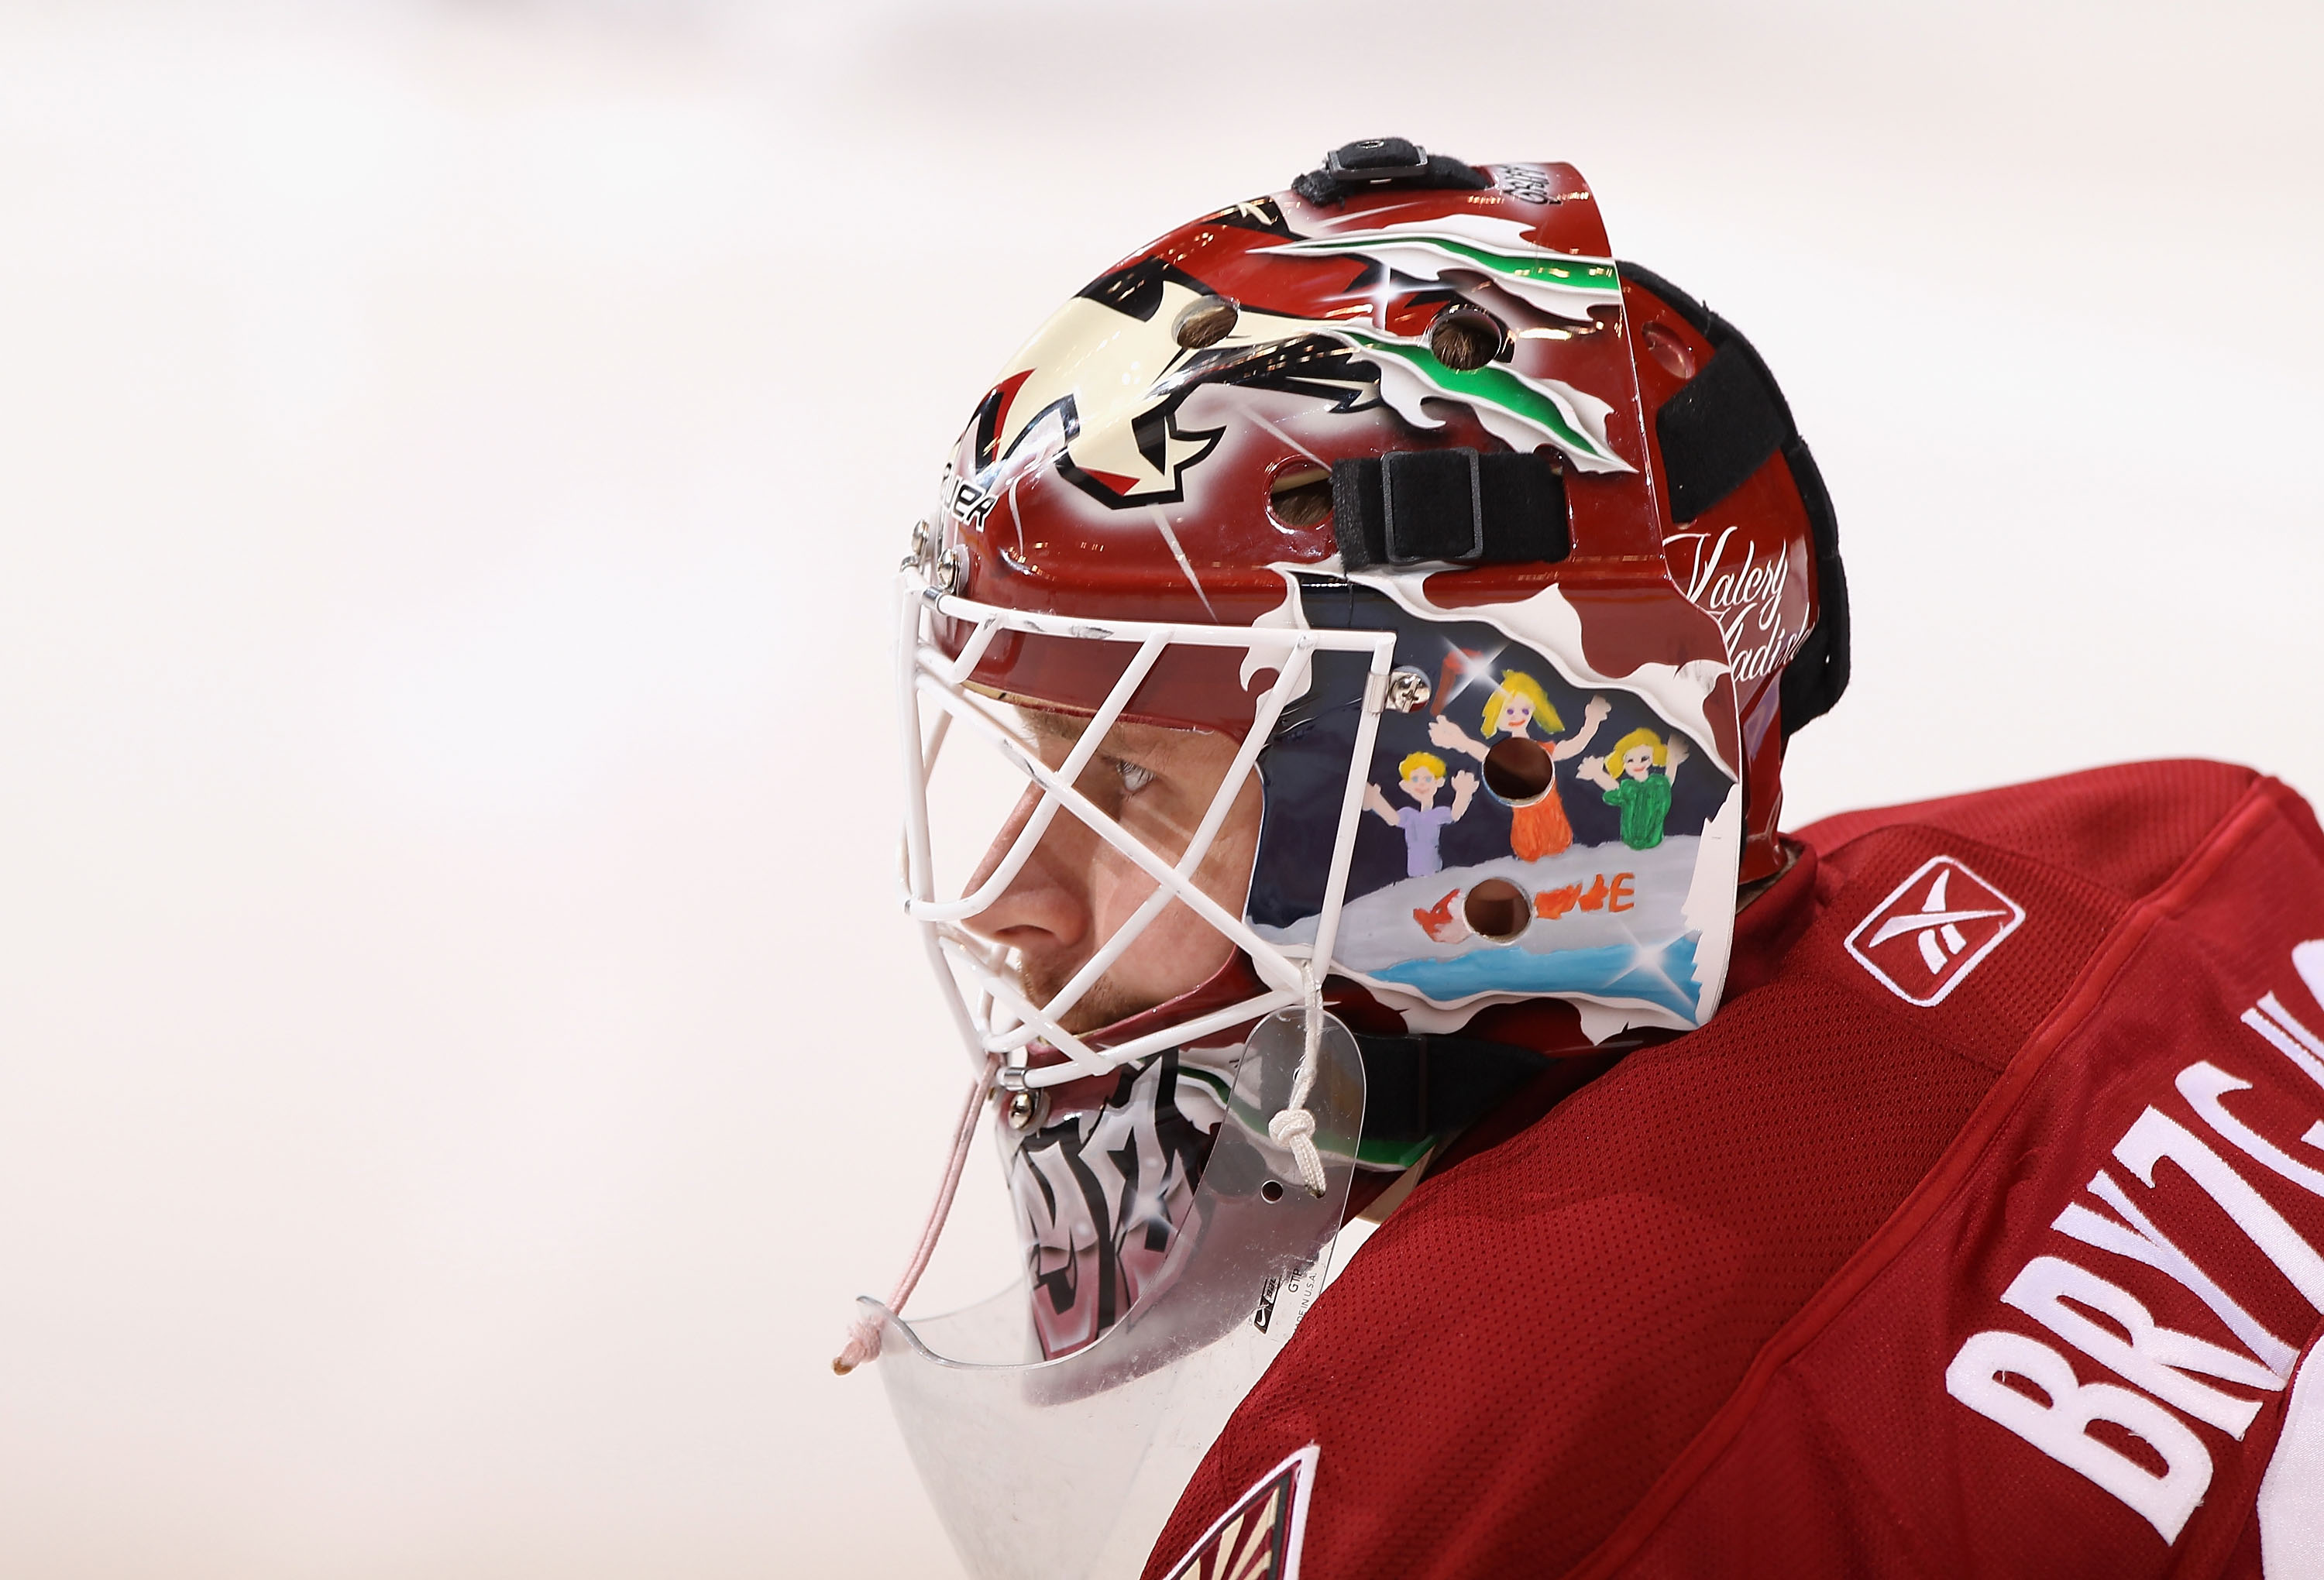 GLENDALE, AZ - MARCH 26:  Goaltender Ilya Bryzgalov #30 of the Phoenix Coyotes warms up before the NHL game against the San Jose Sharks at Jobing.com Arena on March 26, 2011 in Glendale, Arizona.  (Photo by Christian Petersen/Getty Images)